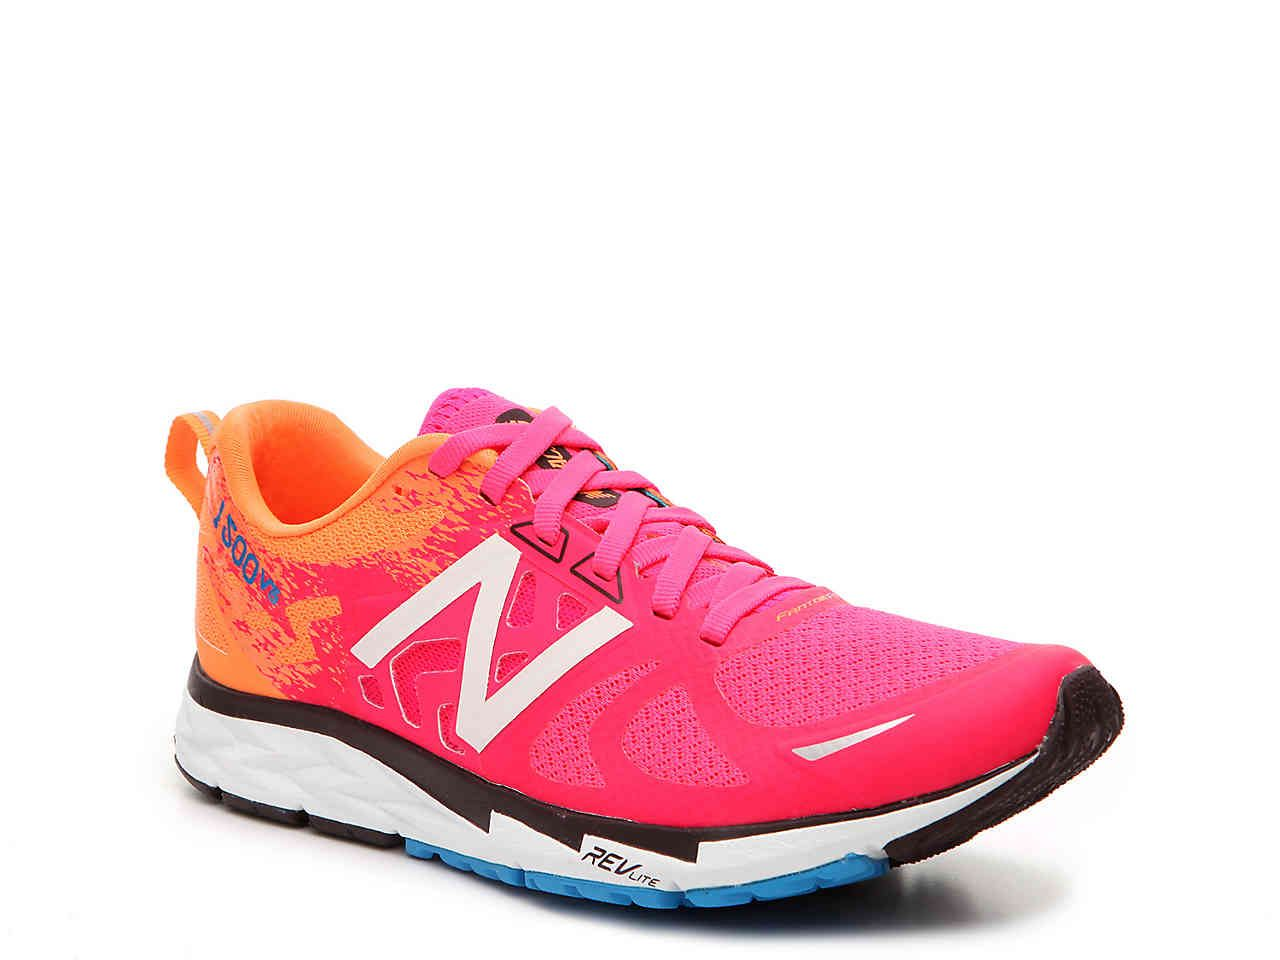 factory price d15a2 22c53 1500 v3 Lightweight Running Shoe - Women's in Pink/Orange ...